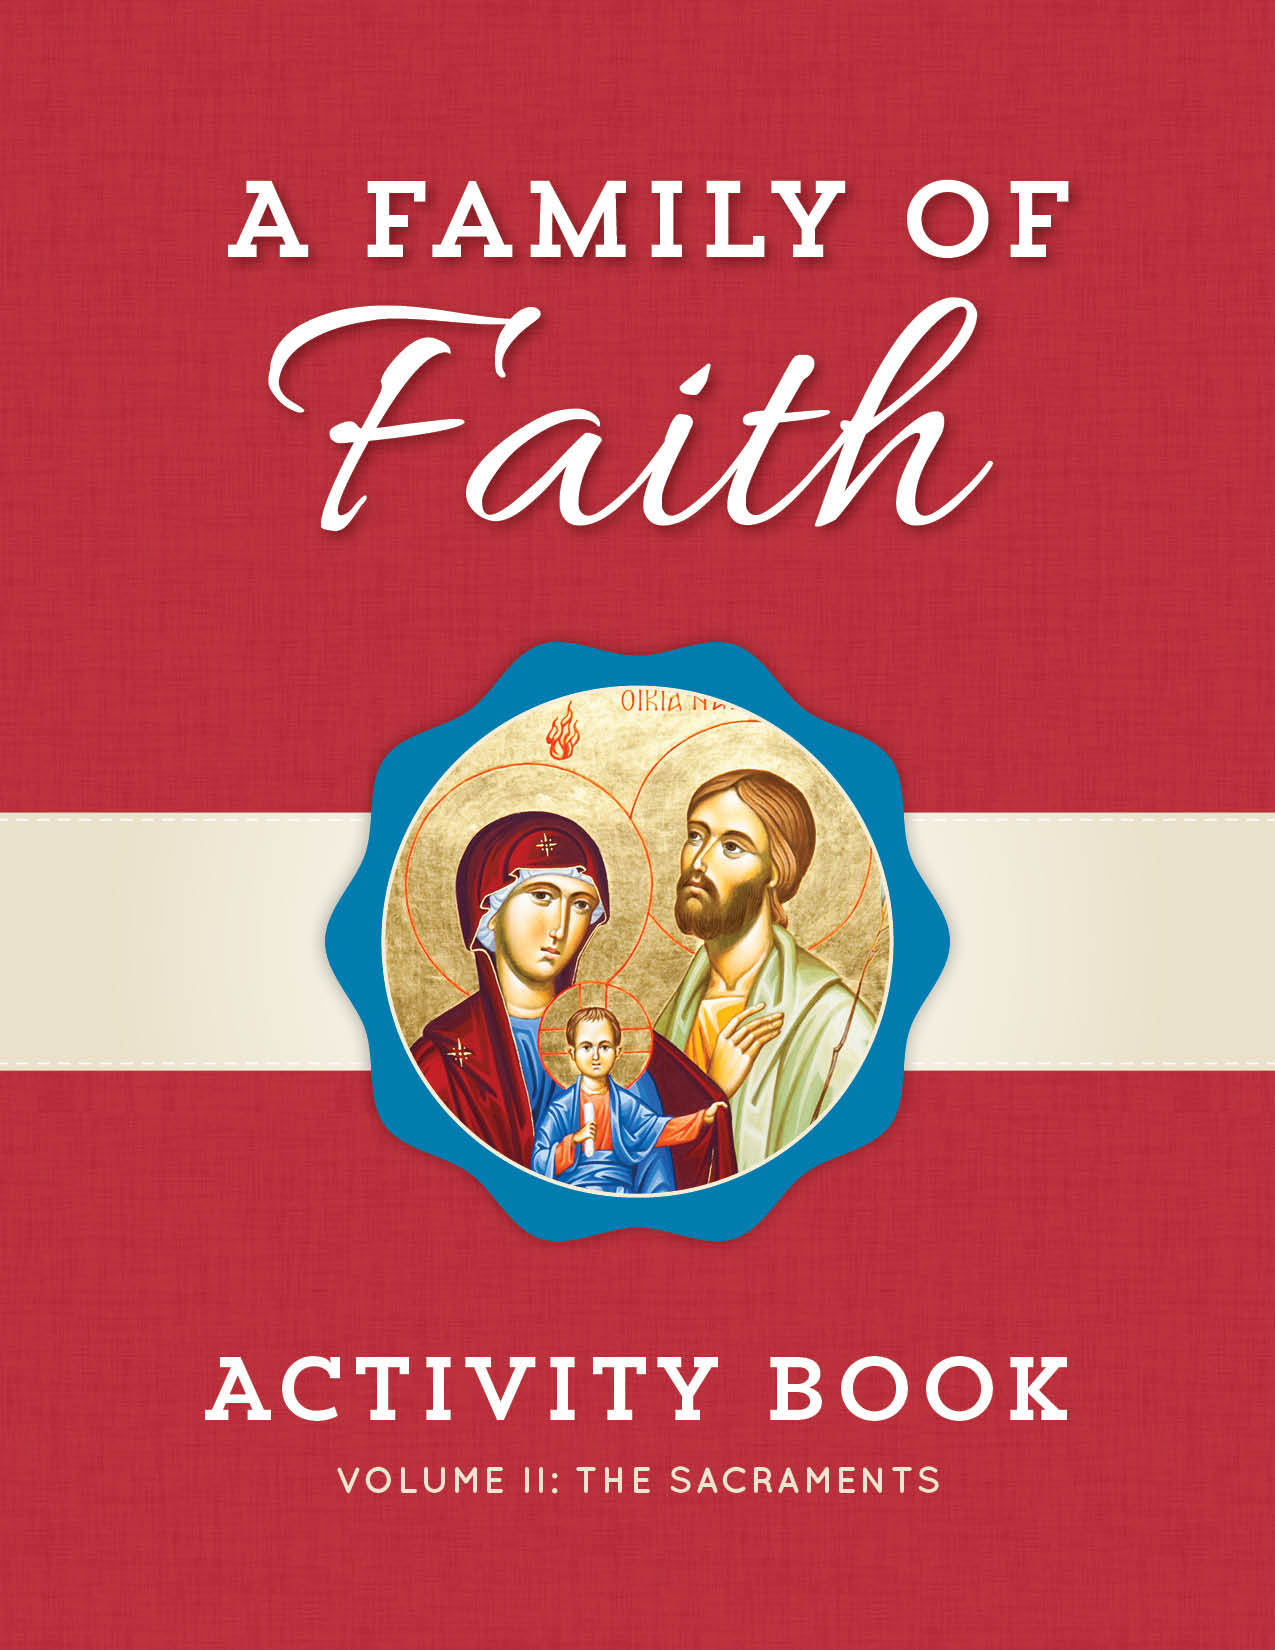 A Family of Faith Activity Book Volume II: The Sacraments